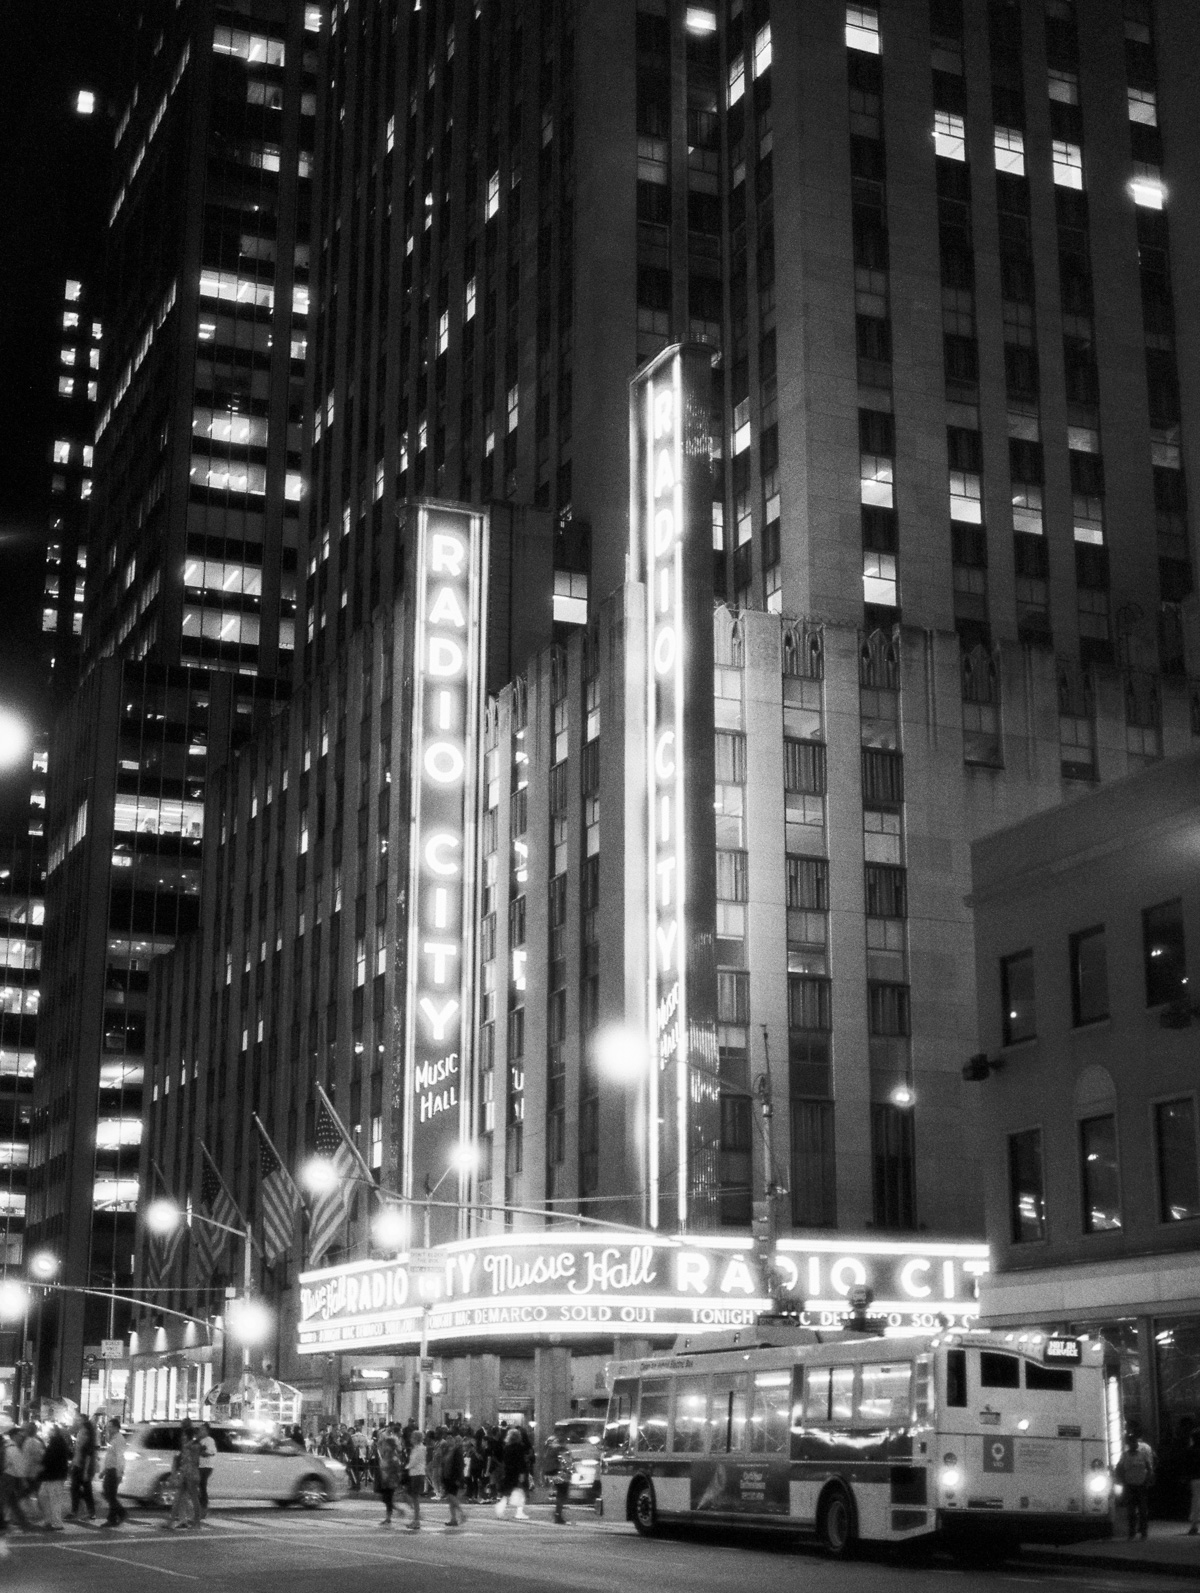 Radio City Music Hall in black and white film at night